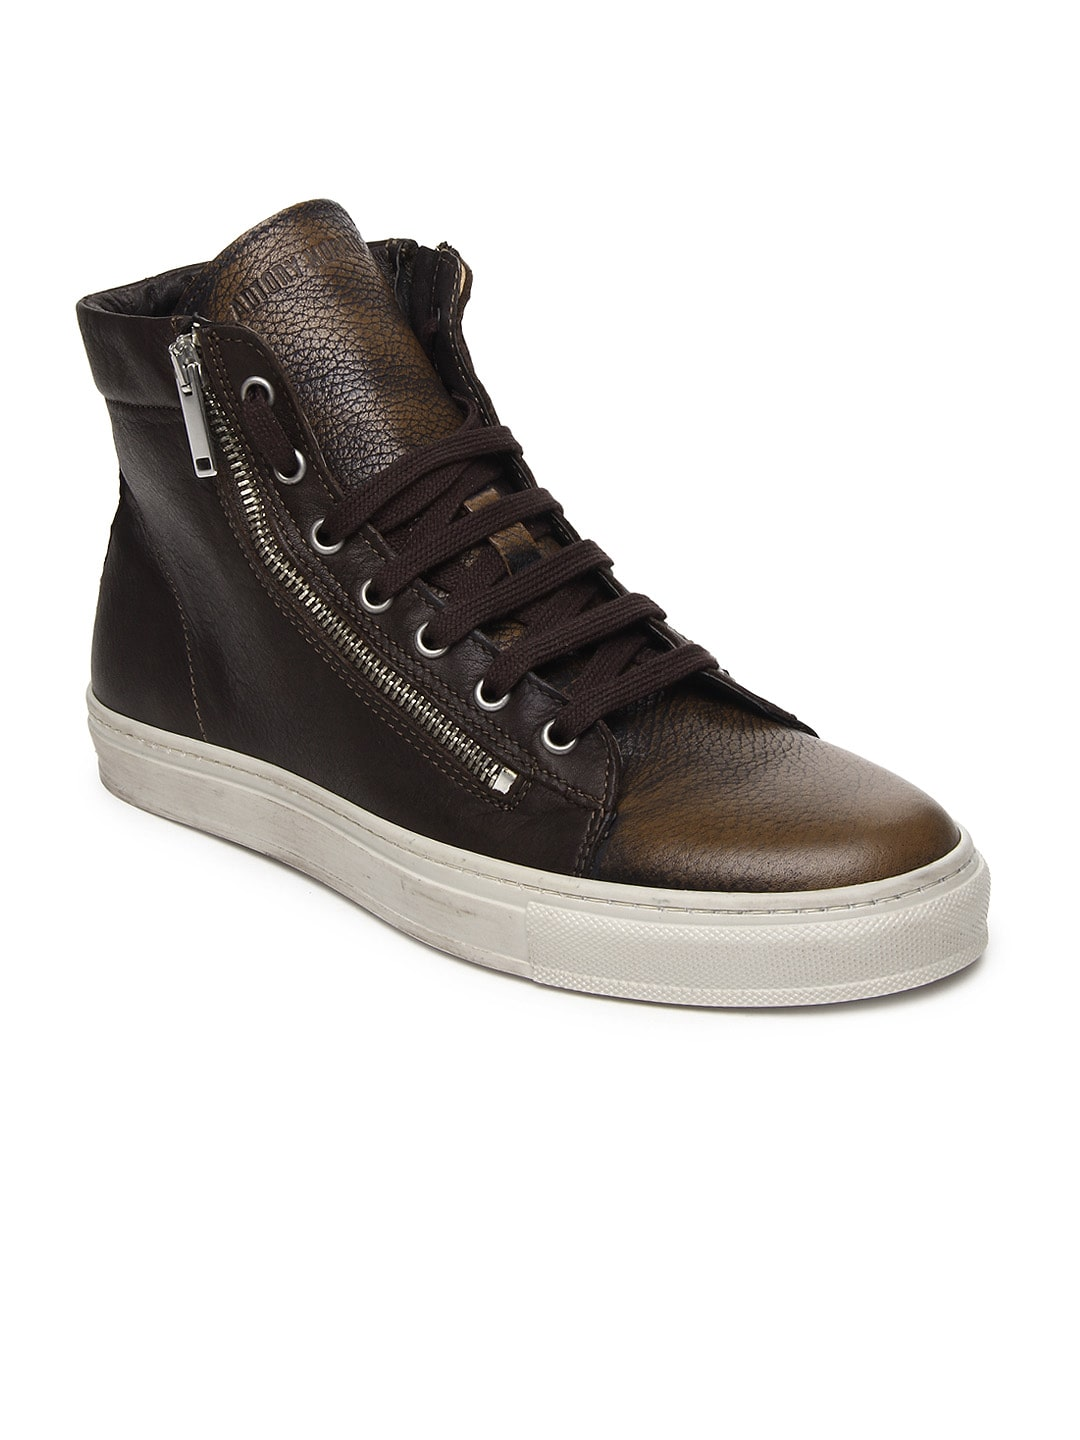 antony morato vintage men brown ankle sneakers. Black Bedroom Furniture Sets. Home Design Ideas